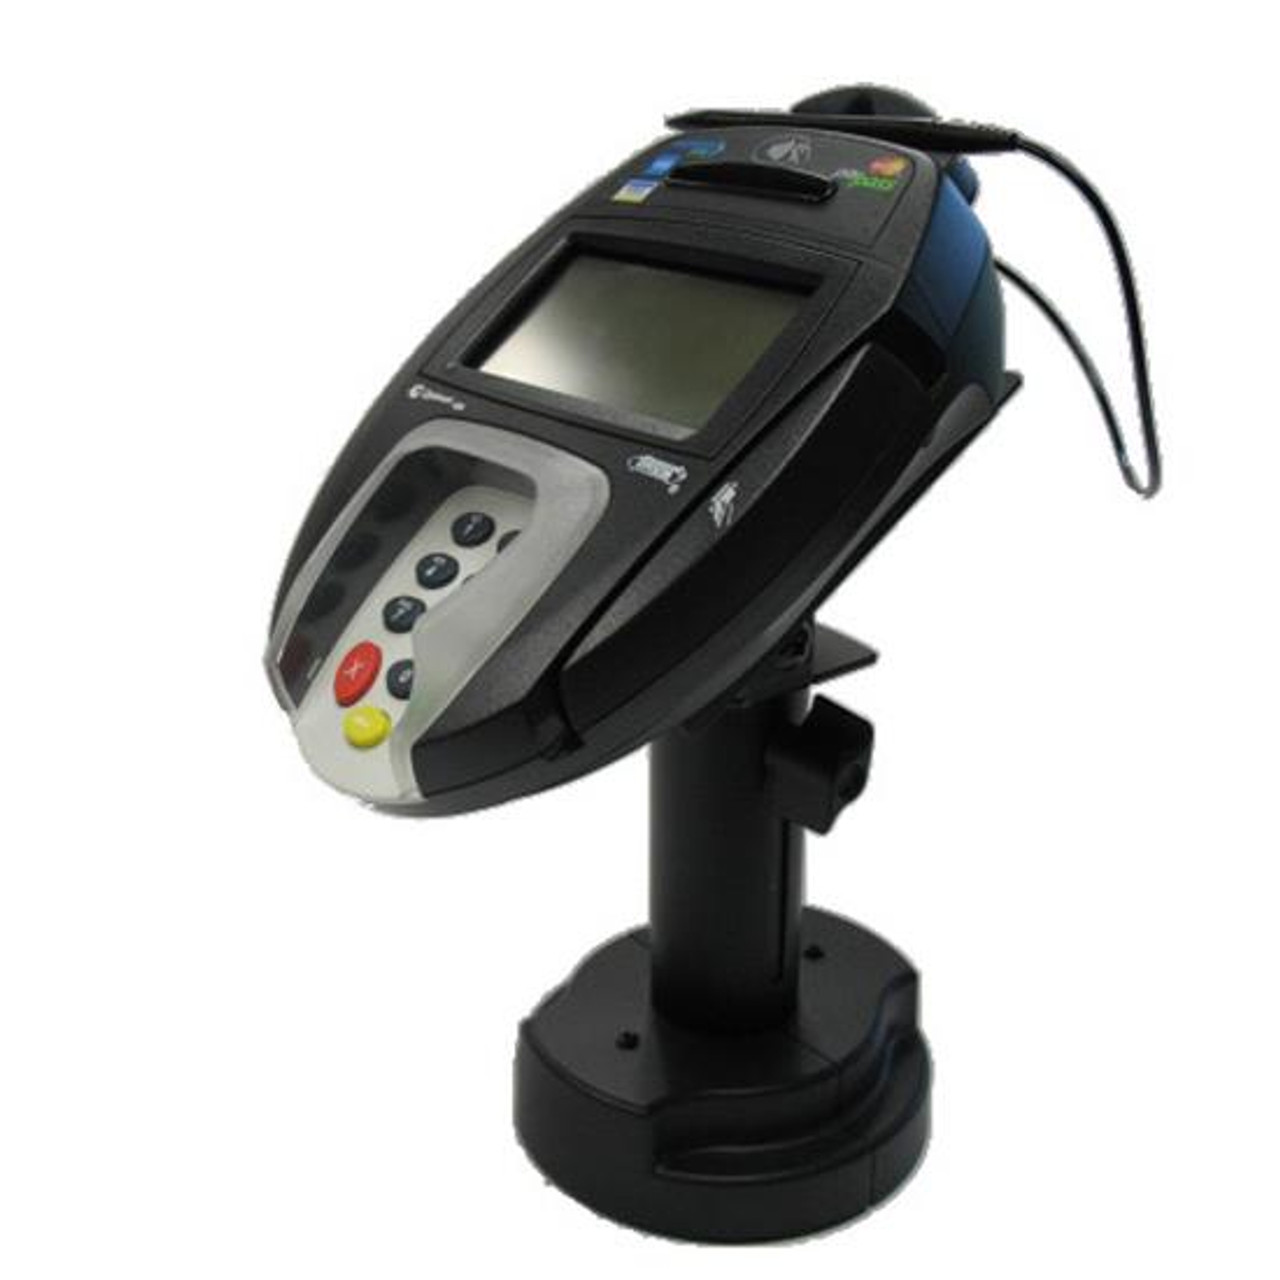 VeriFone MX880 Credit Card Stand Telescoping Pedestal Quick Release by Swivel Stands